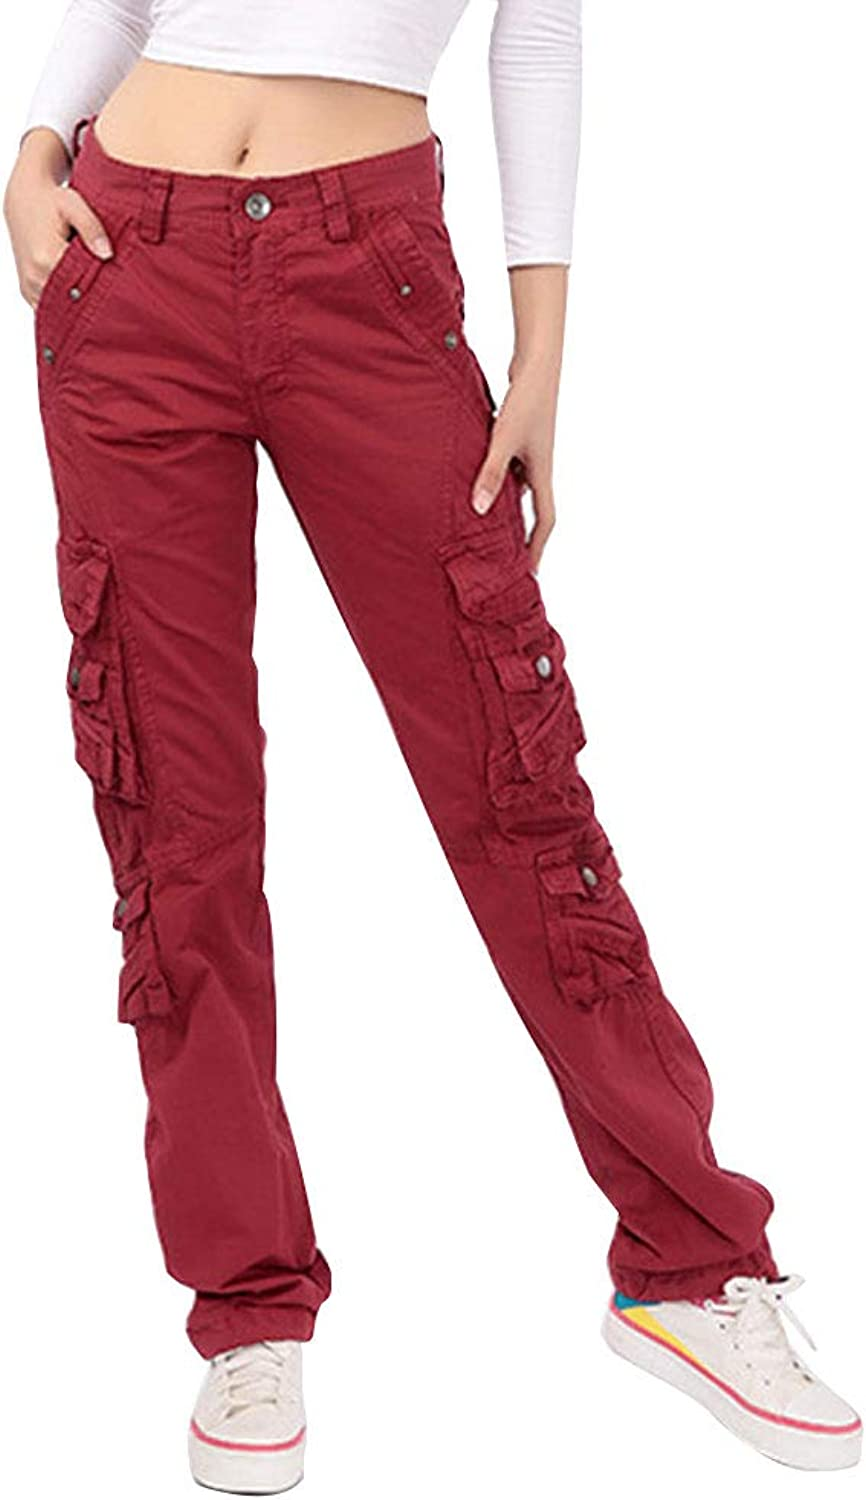 EVEDESIGN Women's Active Fitted Military Pants